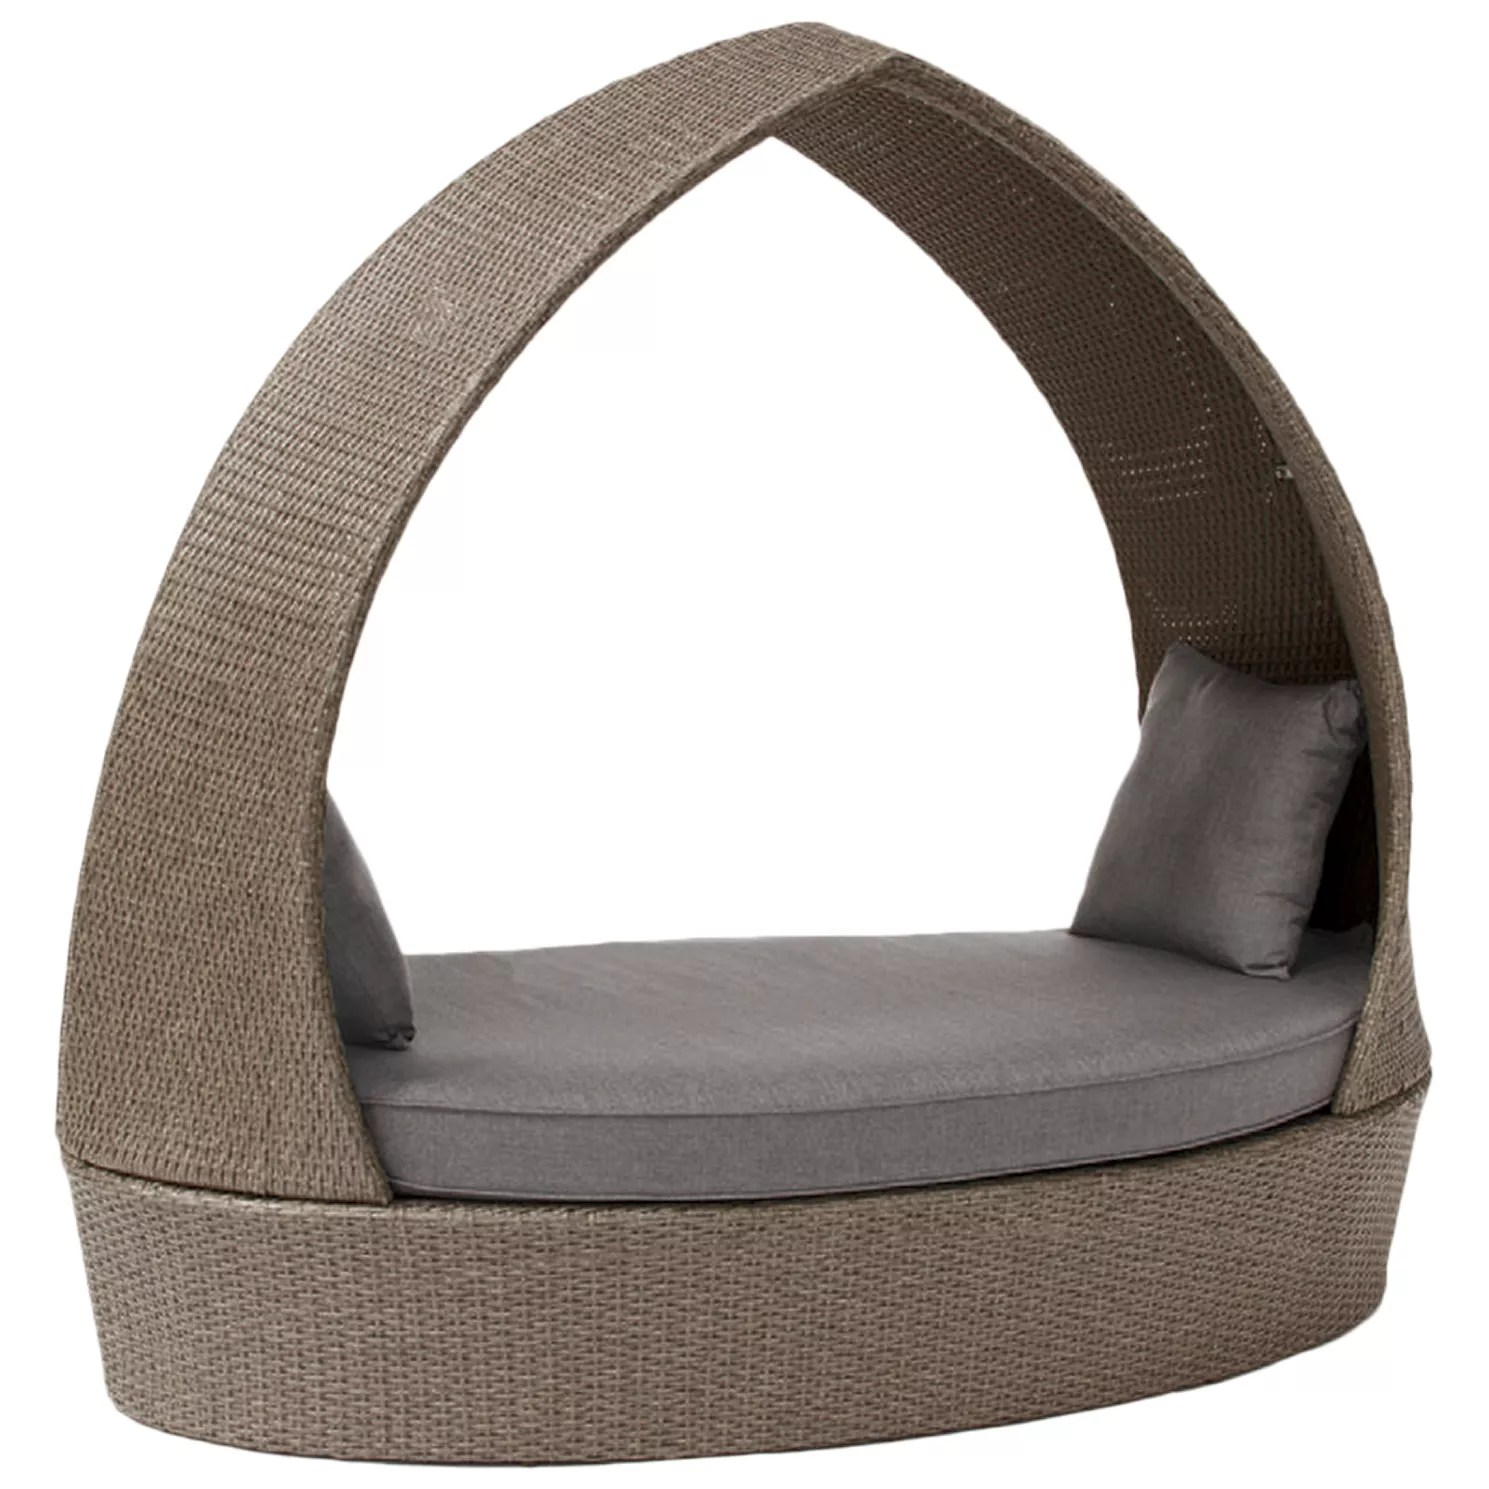 Kettler Kids Comfort Kettler Outdoor Pod Chair At John Lewis Partners